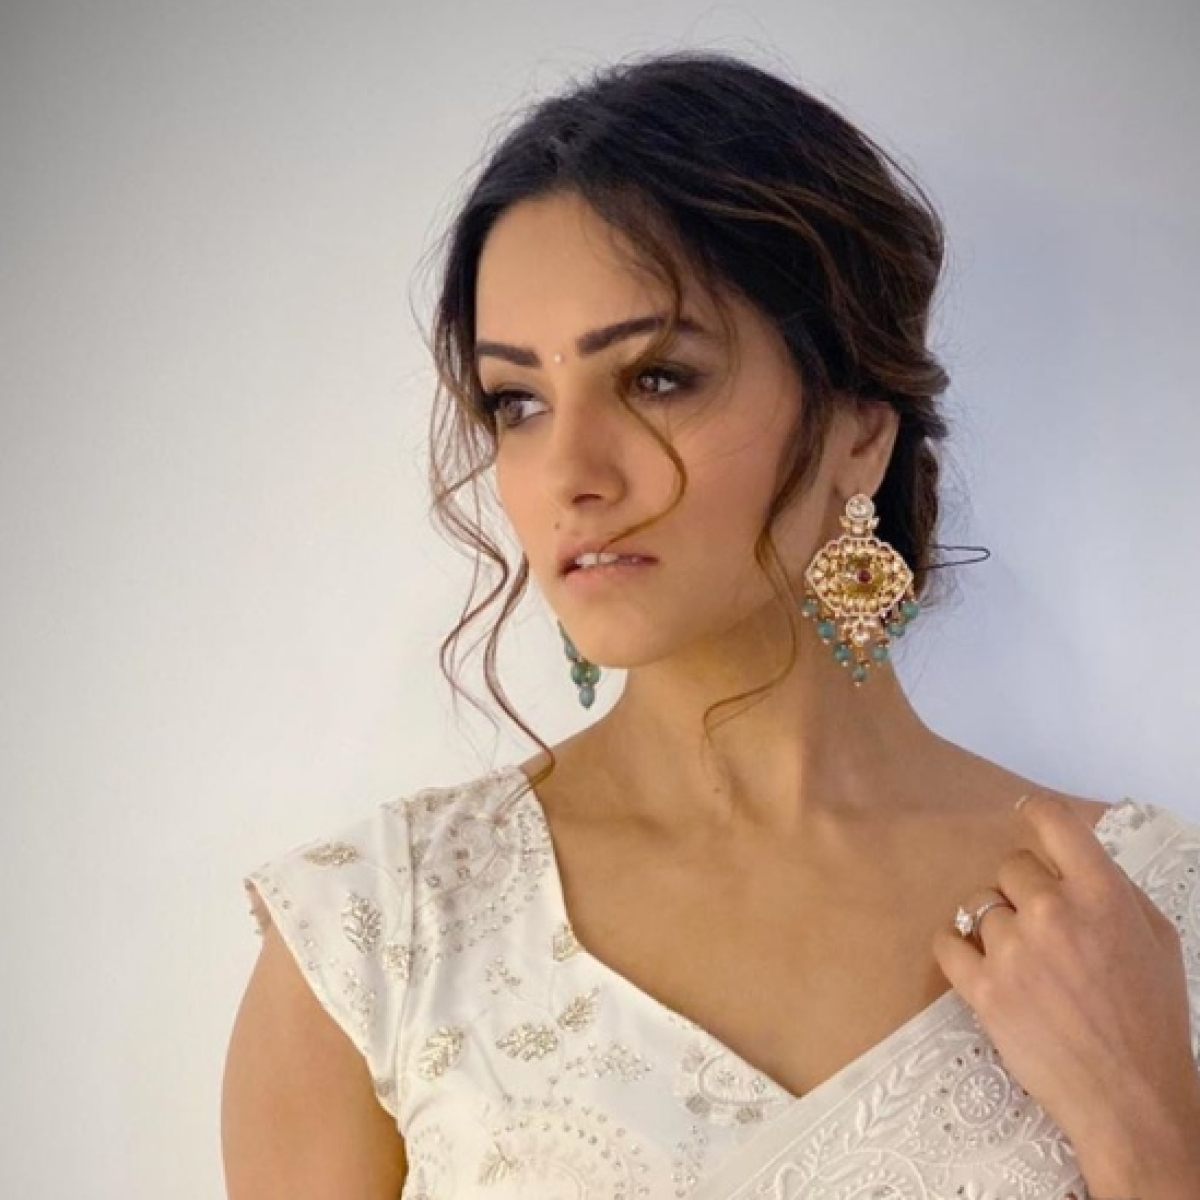 'You will be missed every second': Anita Hassanandani mourns the demise of her father-in-law